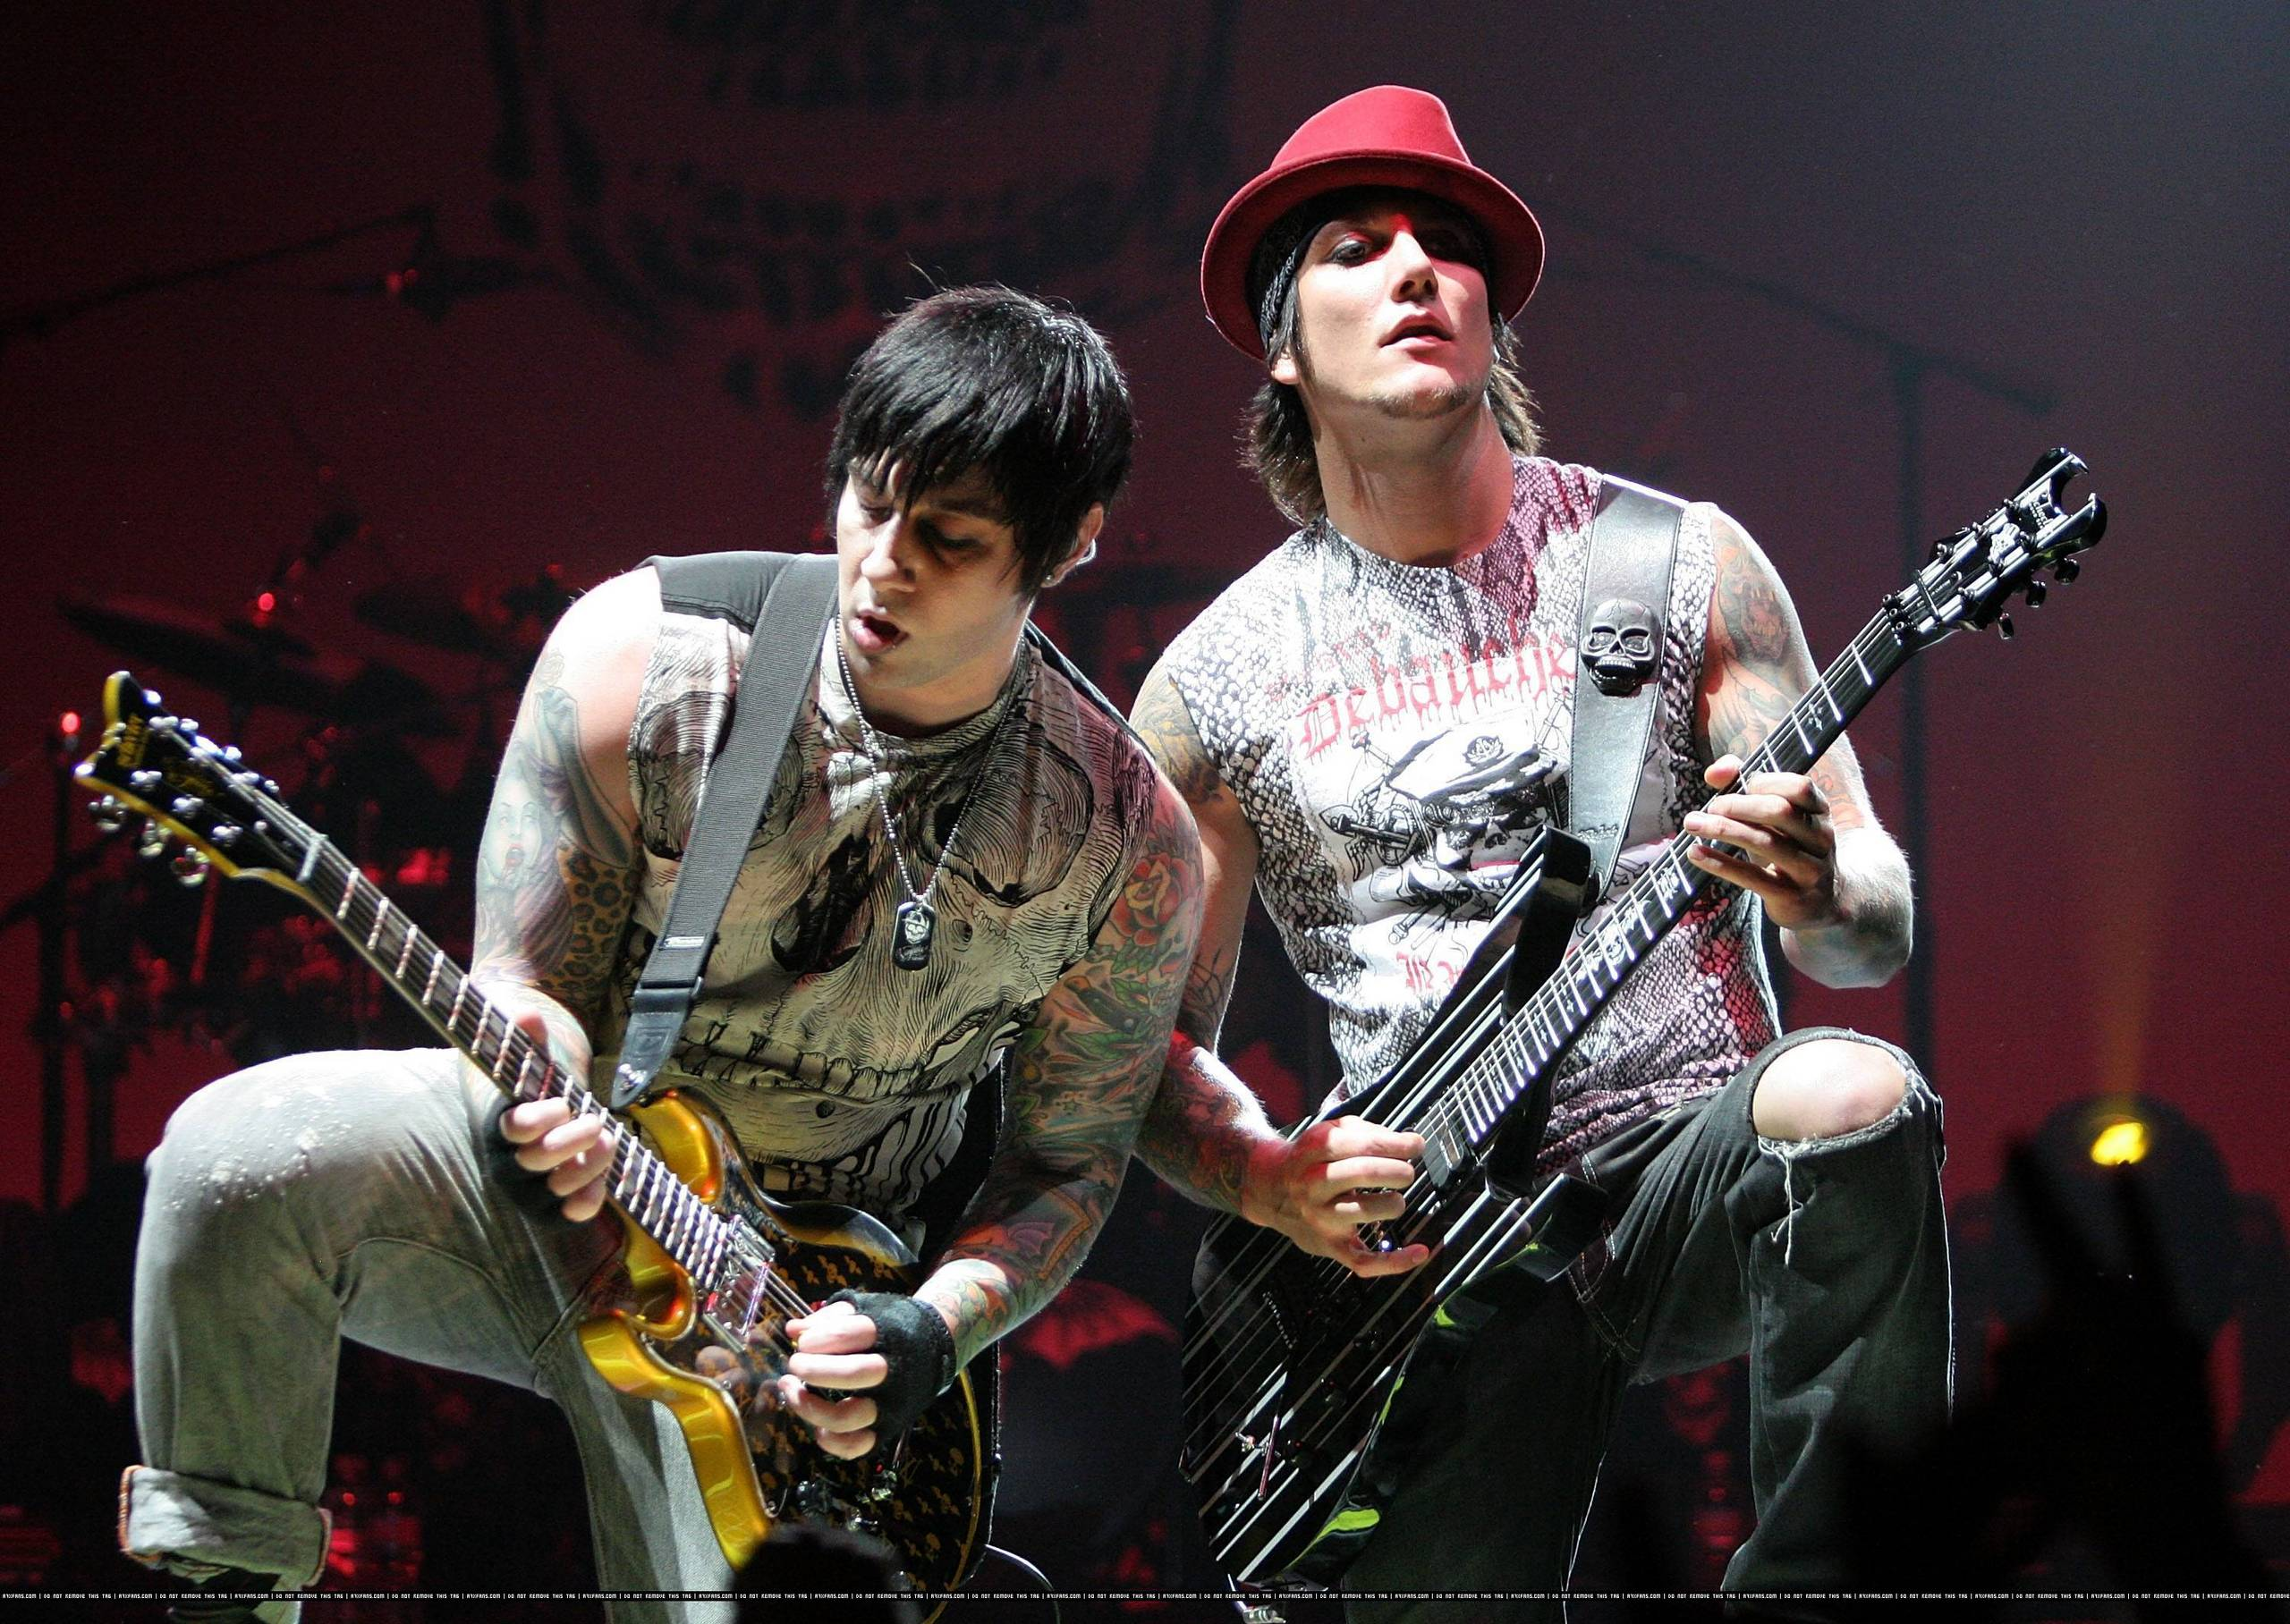 Avenged Sevenfold - Avenged Sevenfold Photo (11638785 ...